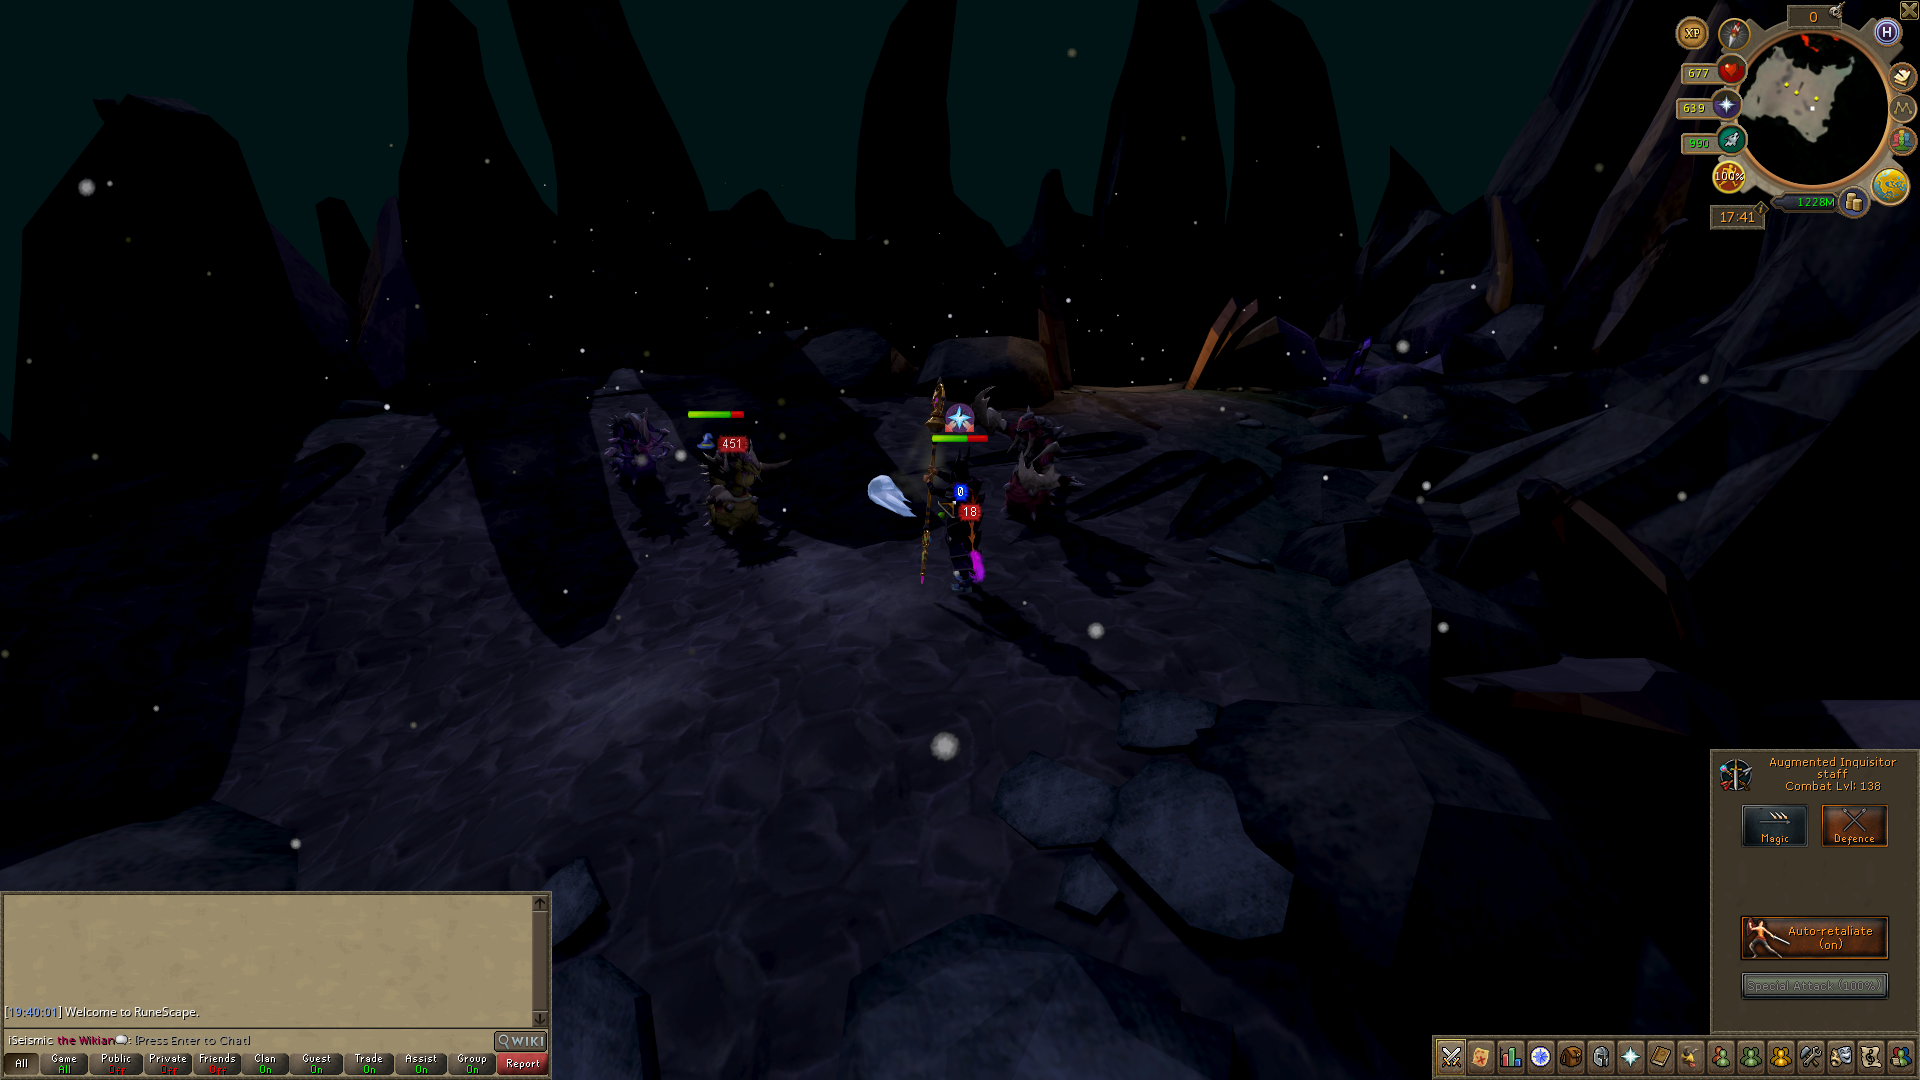 Player fighting in Legacy combat mode with the Legacy interface